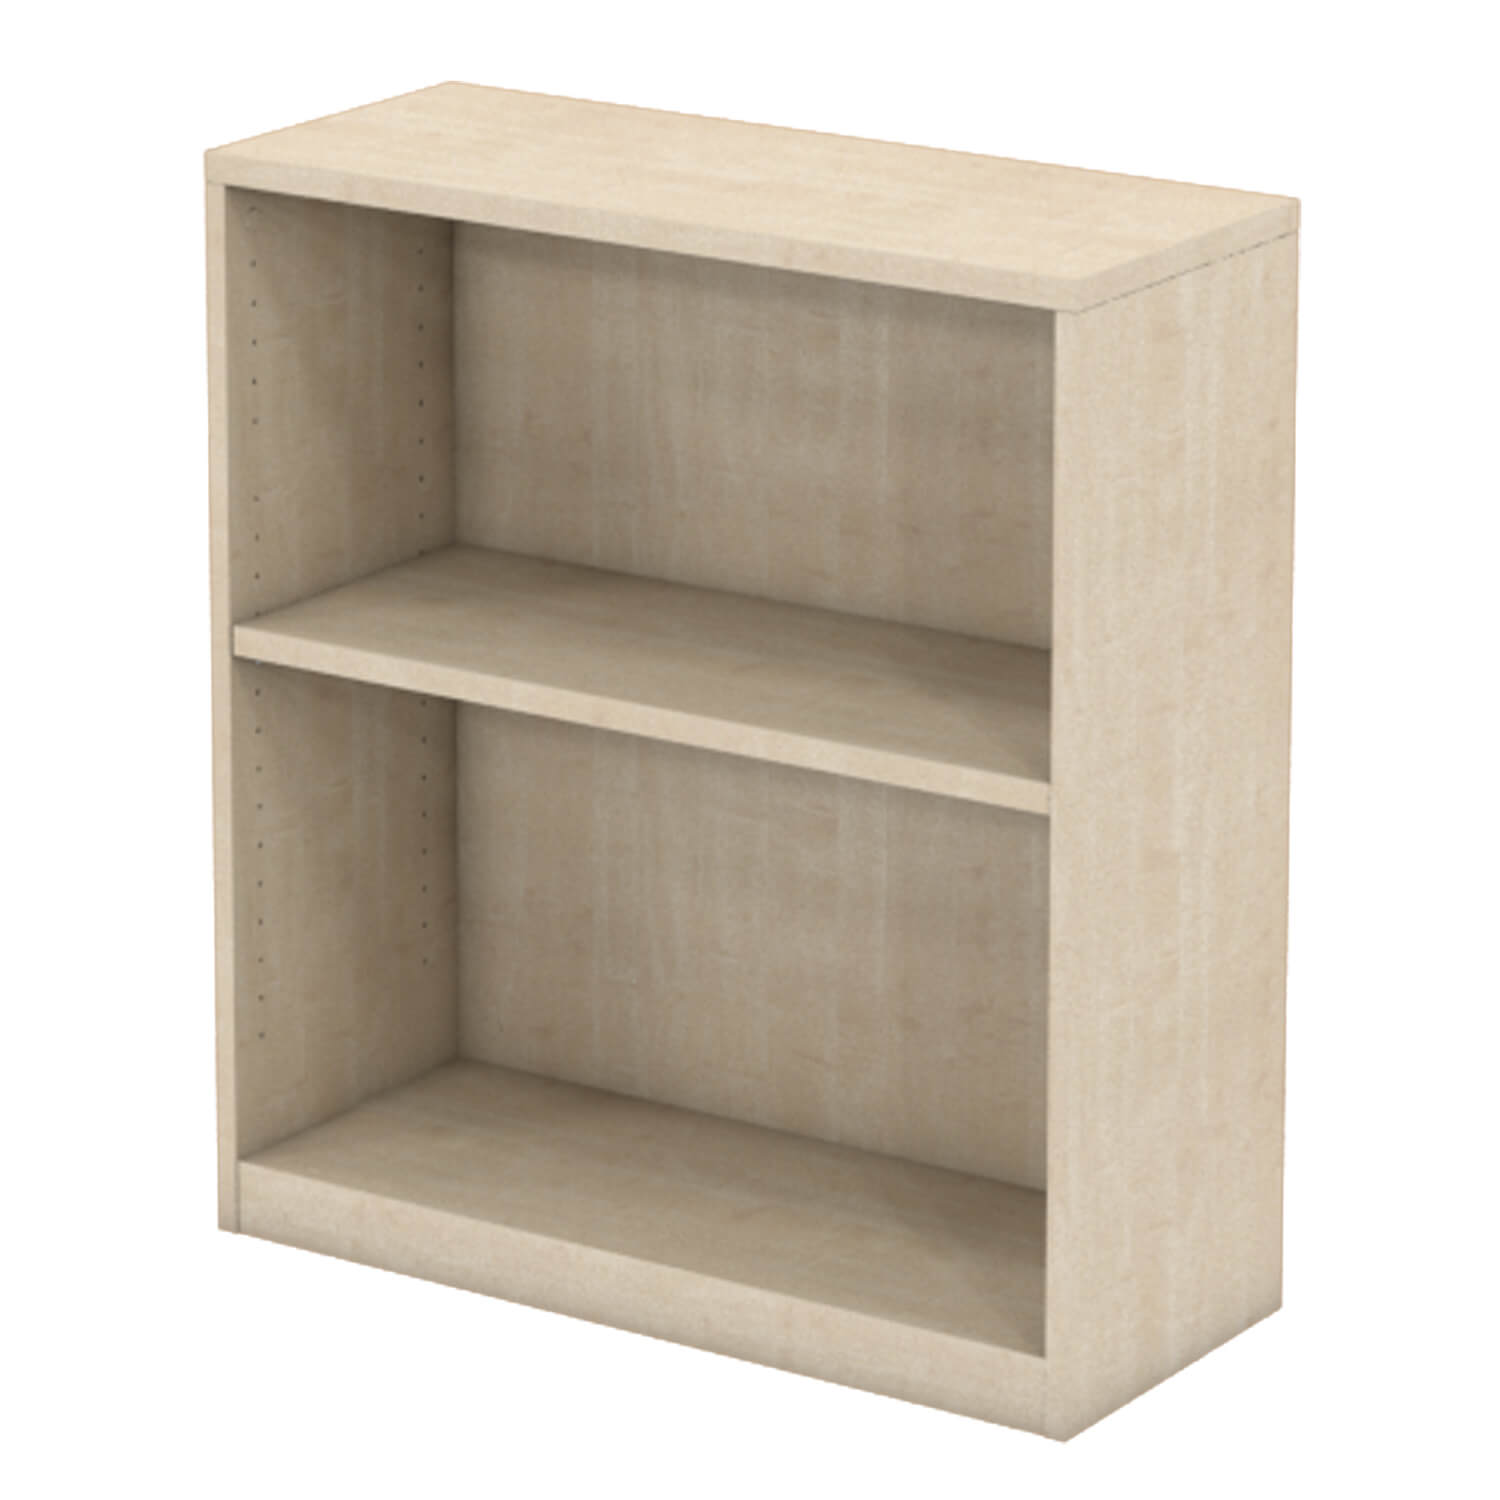 LP Infinity Combination Unit | 1 Shelf